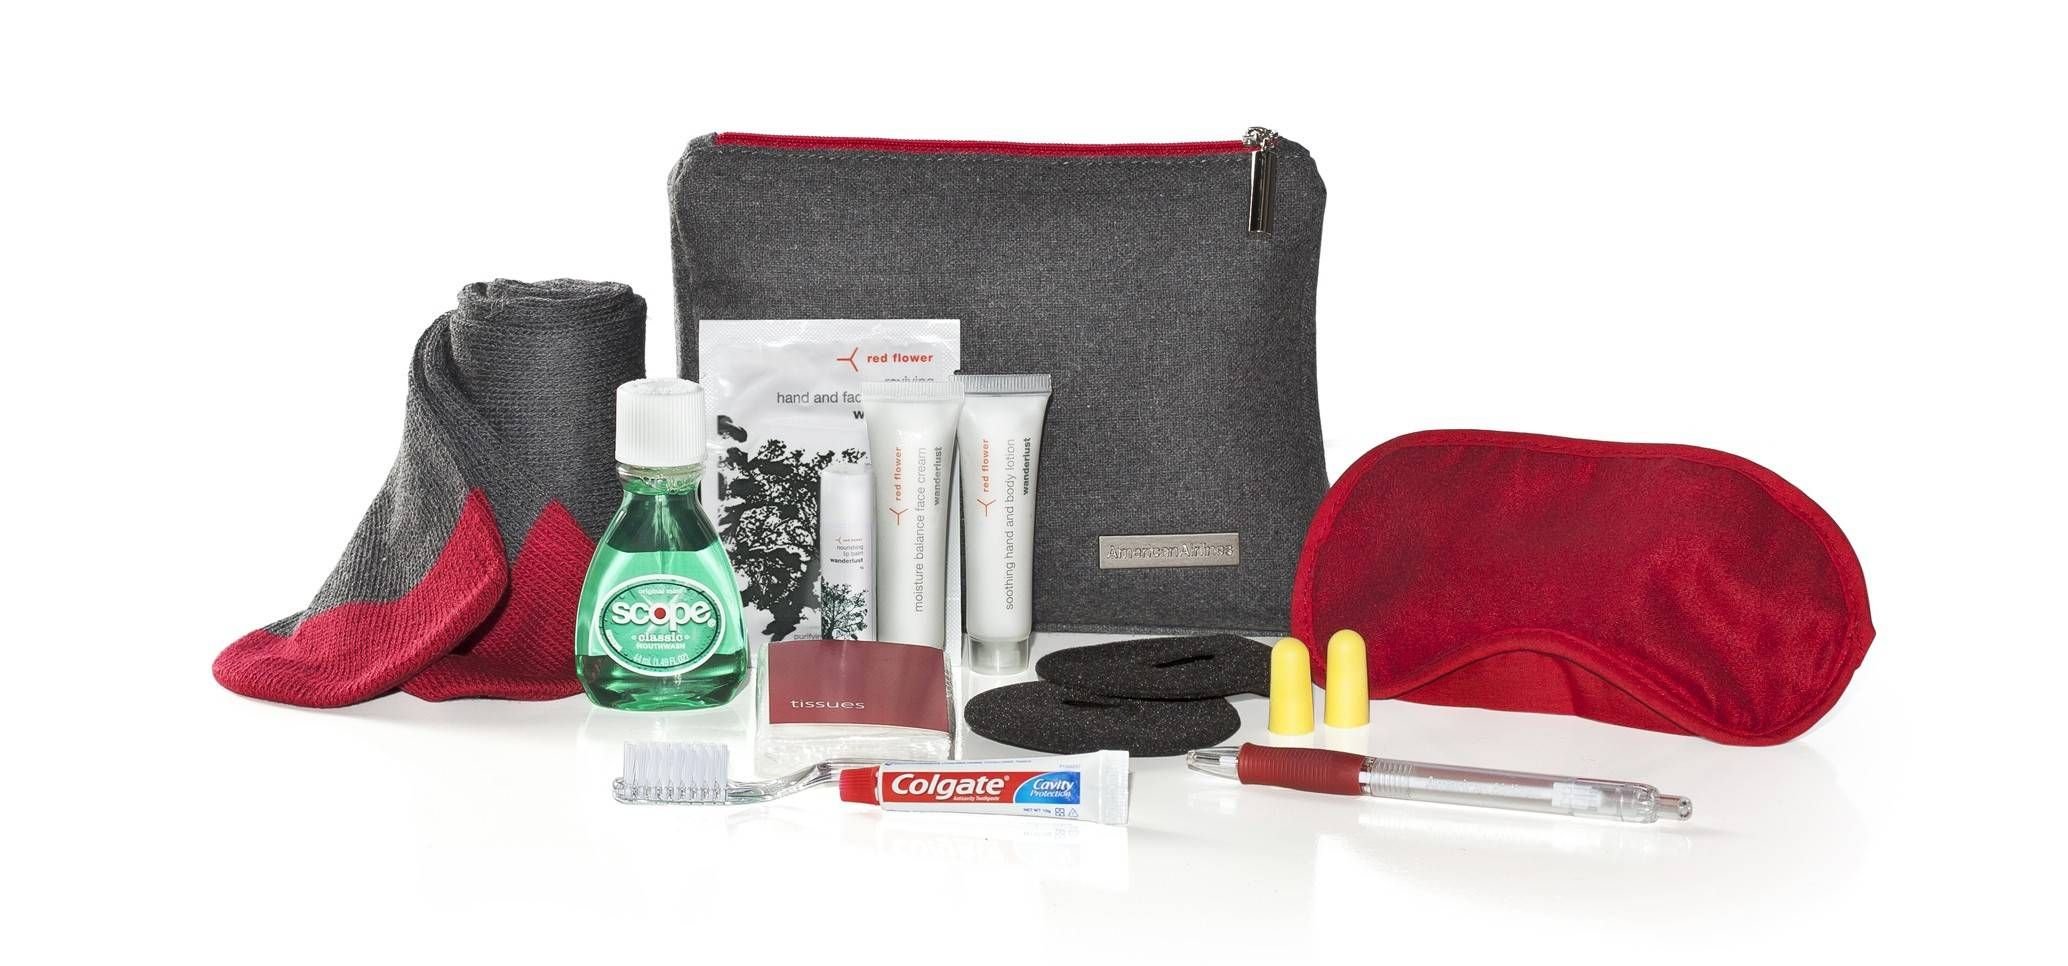 New Intl First Class amenity kit-1